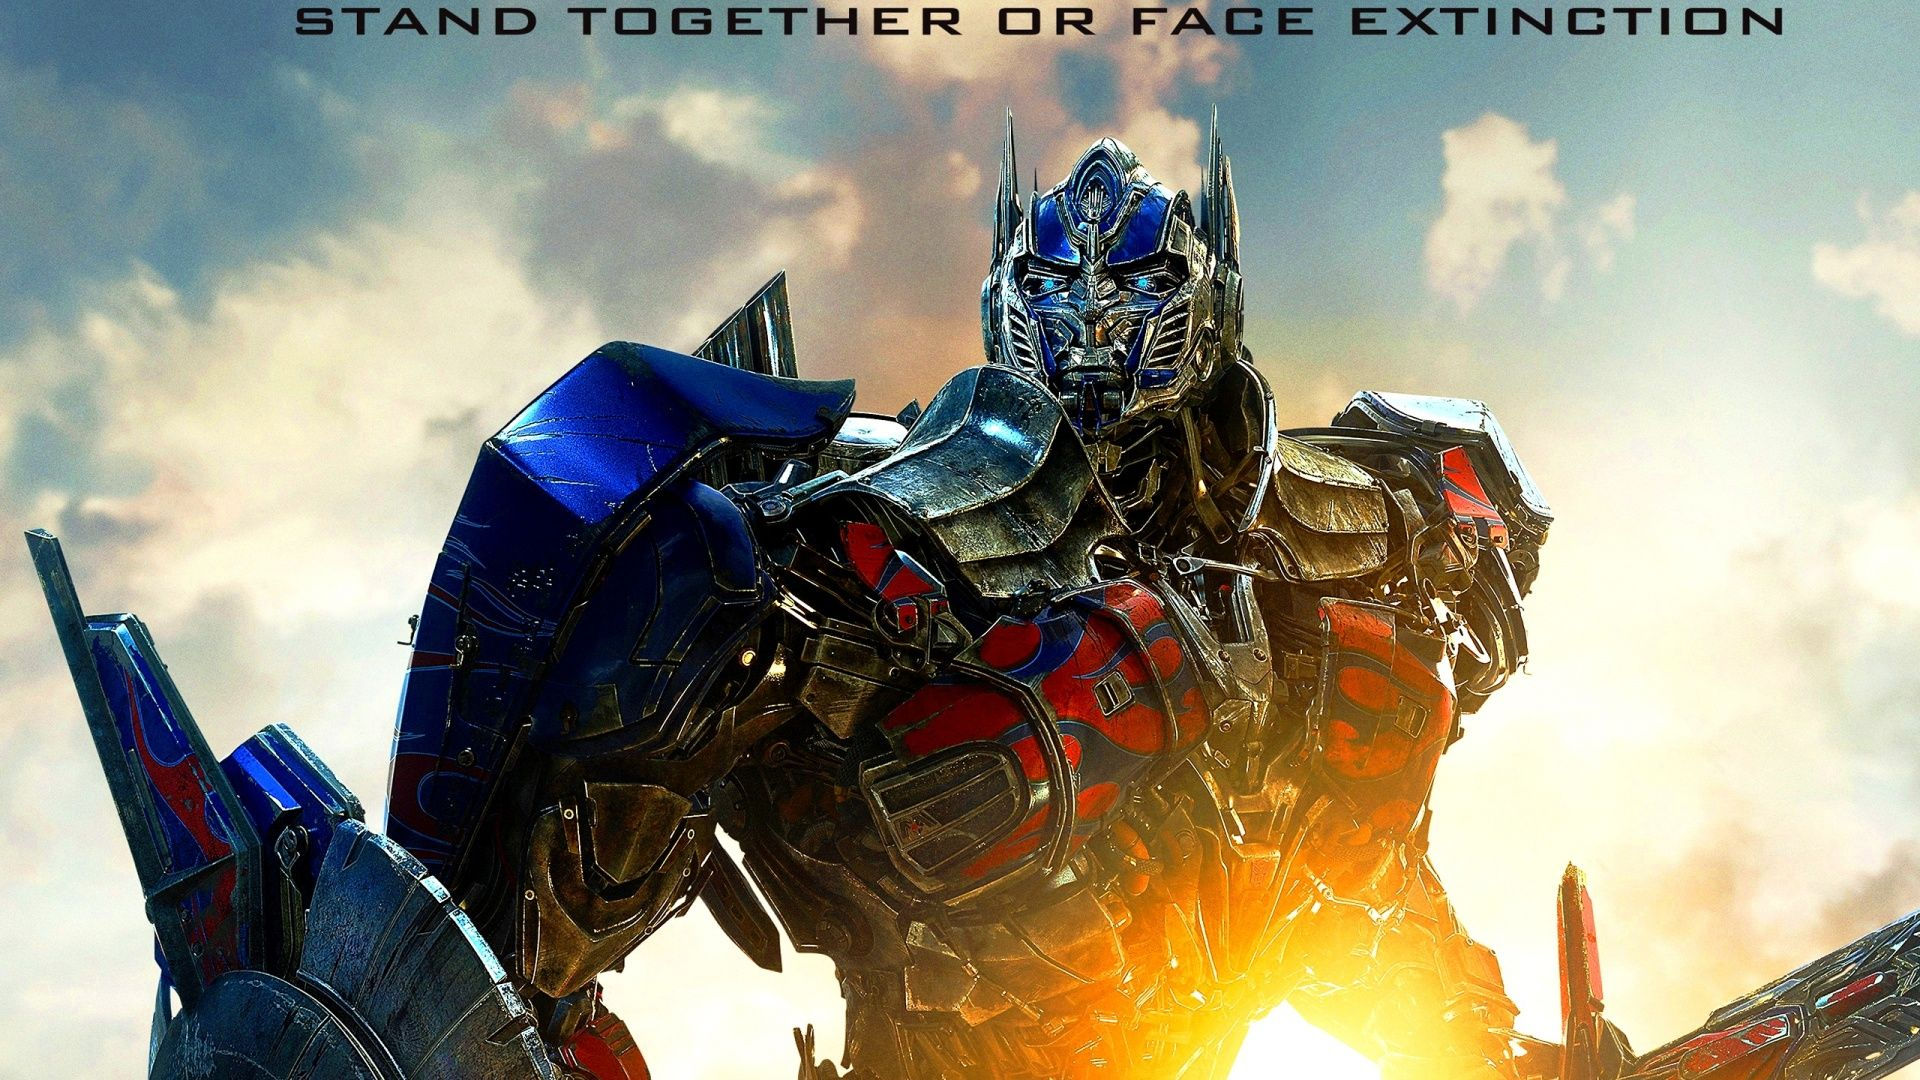 transformers age of extinction hd wallpaper [1920 x 1080] need